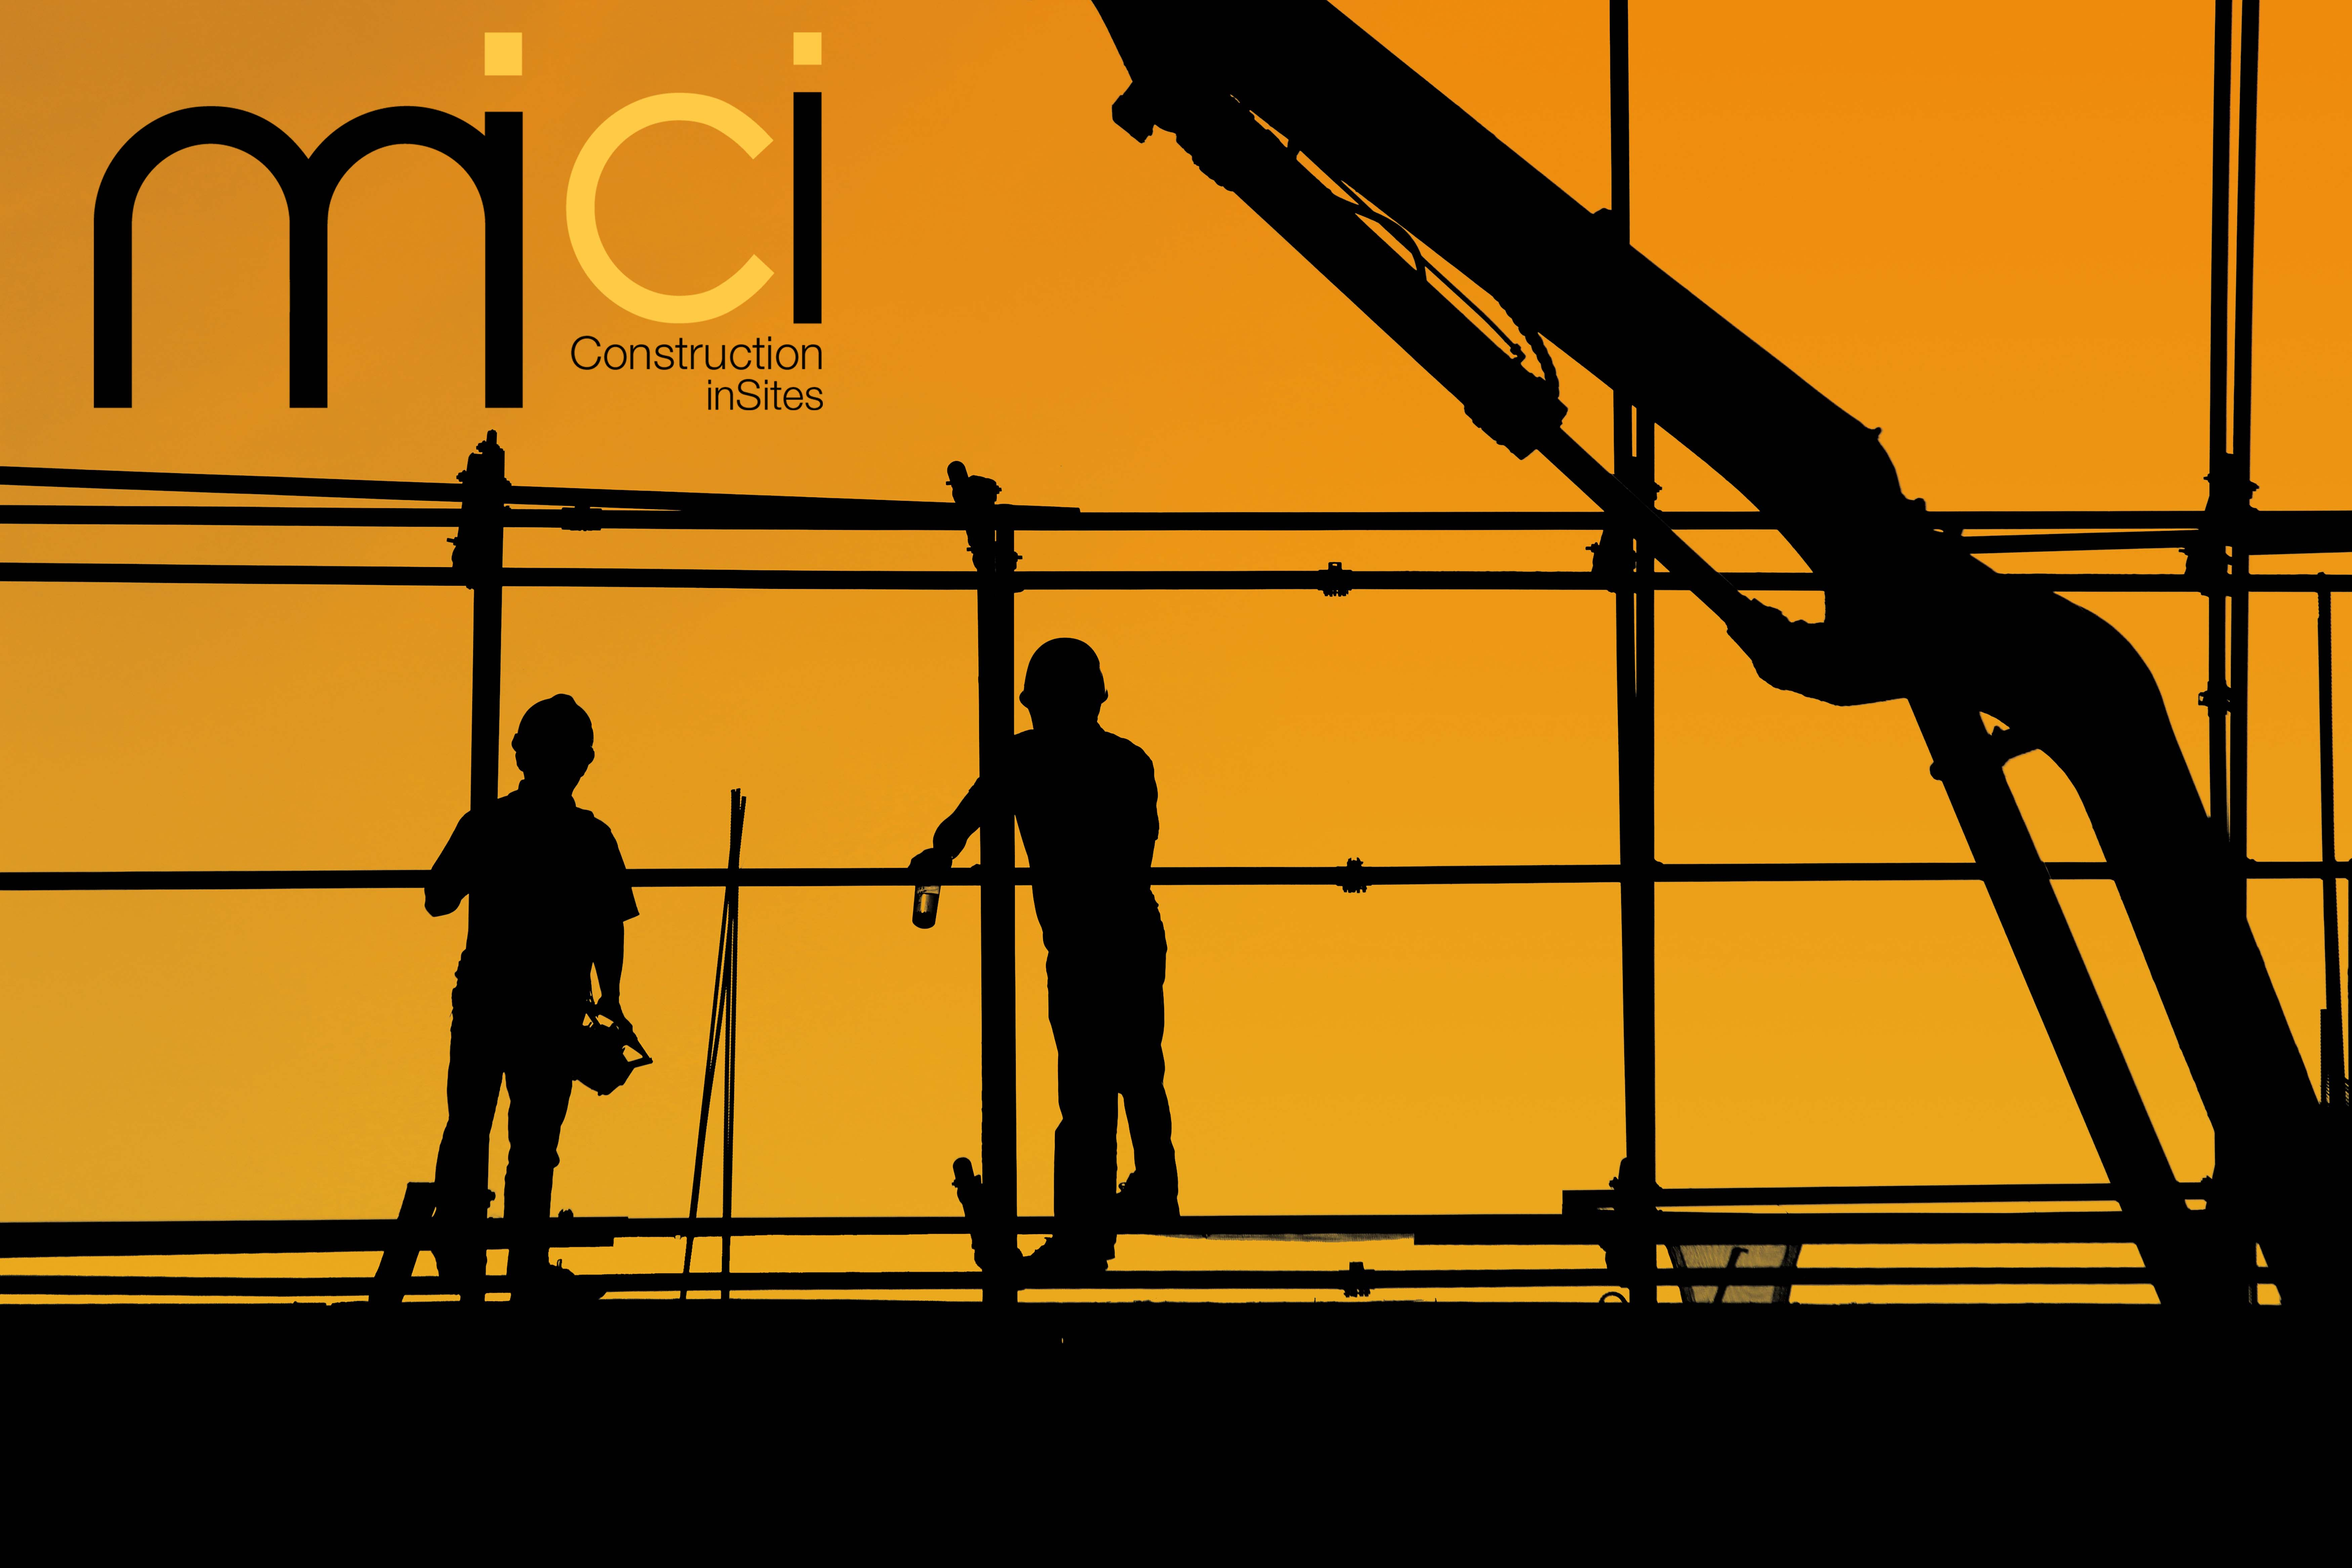 Workers on a construction project